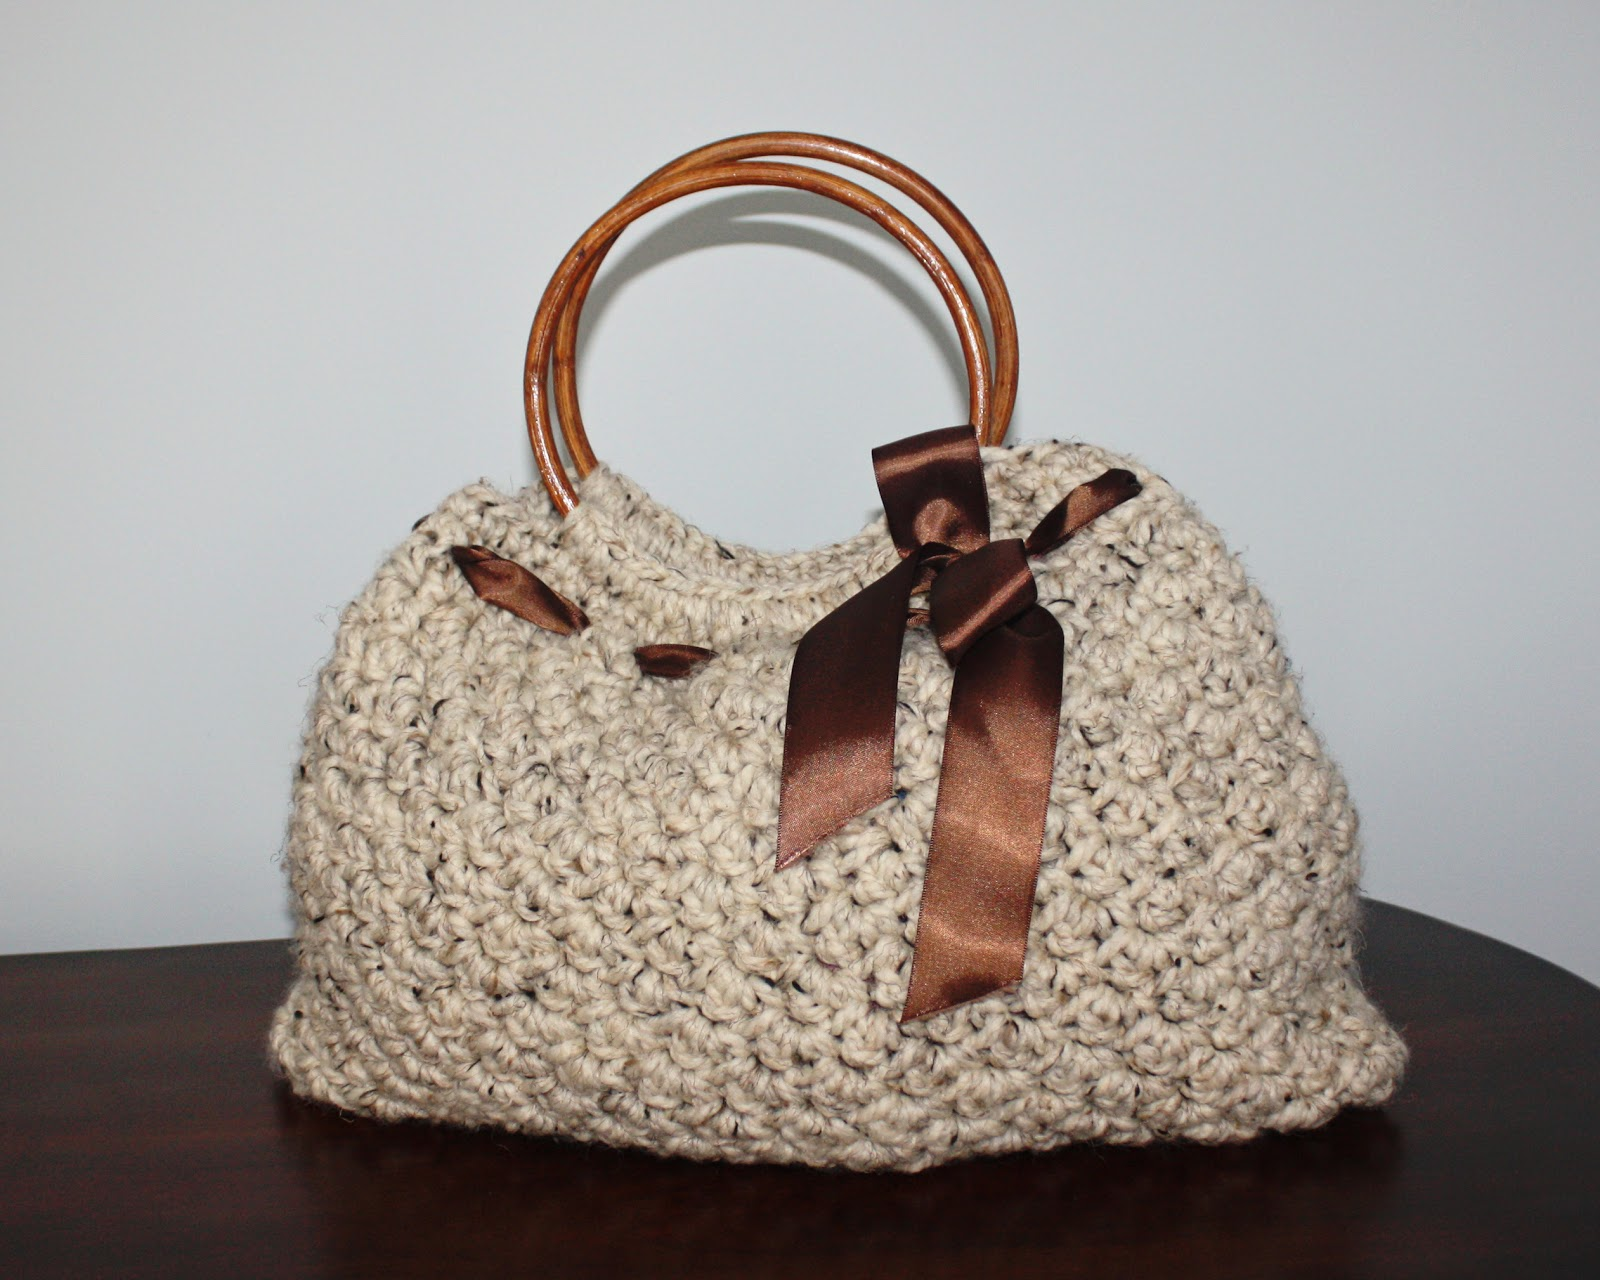 Free Crochet Purse And Bag Patterns : Pretty Darn Adorable Crochet: Crochet Handbag/Purse